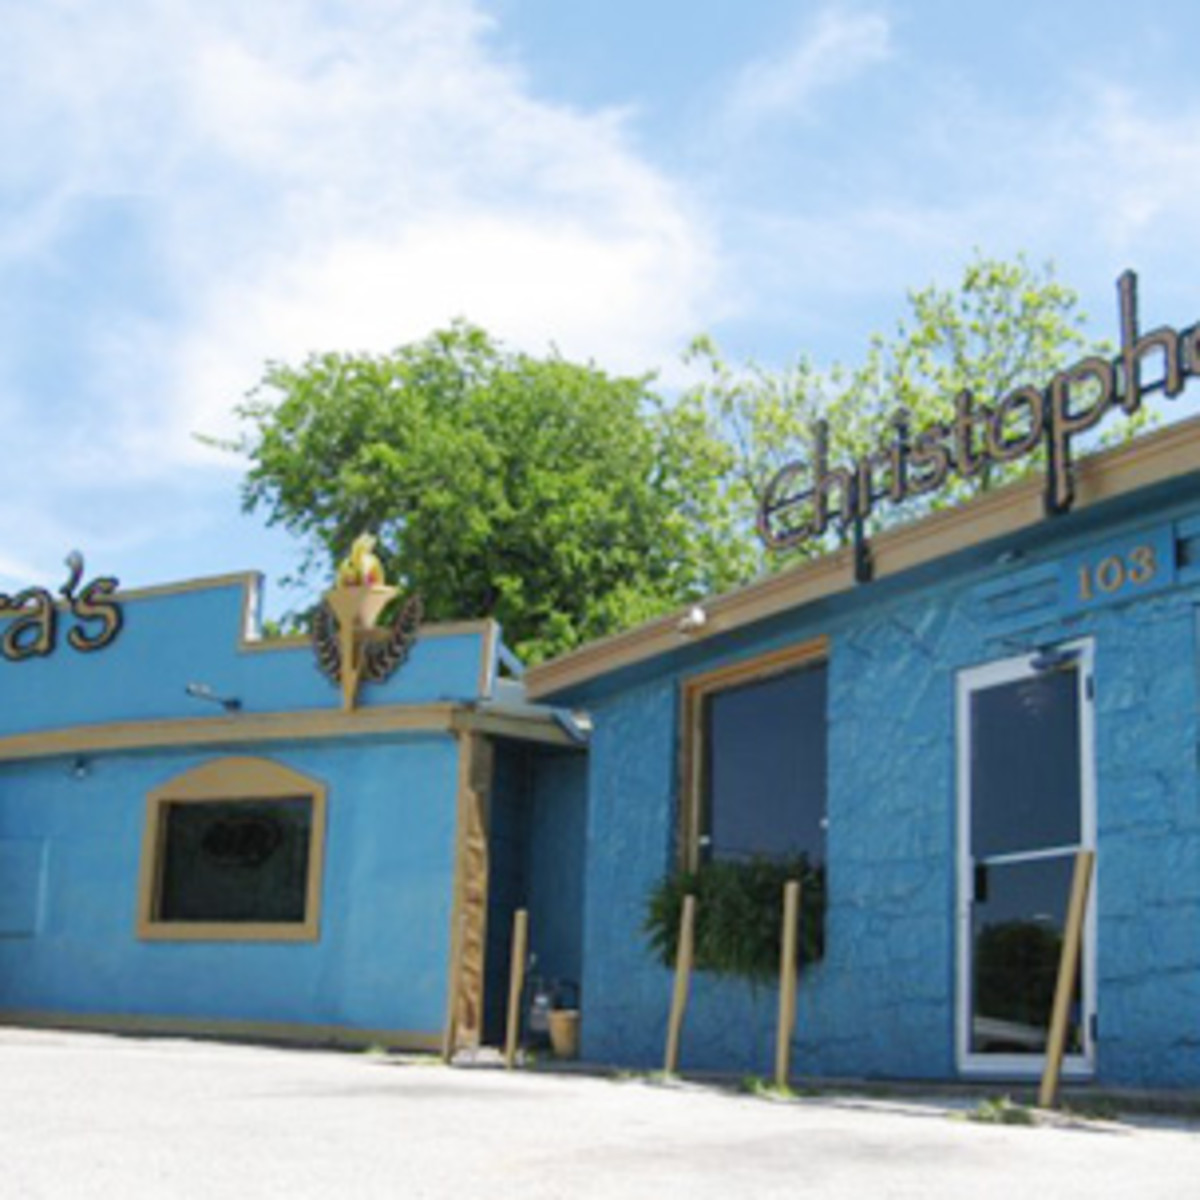 Austin_photo: places_food_phara's_exterior